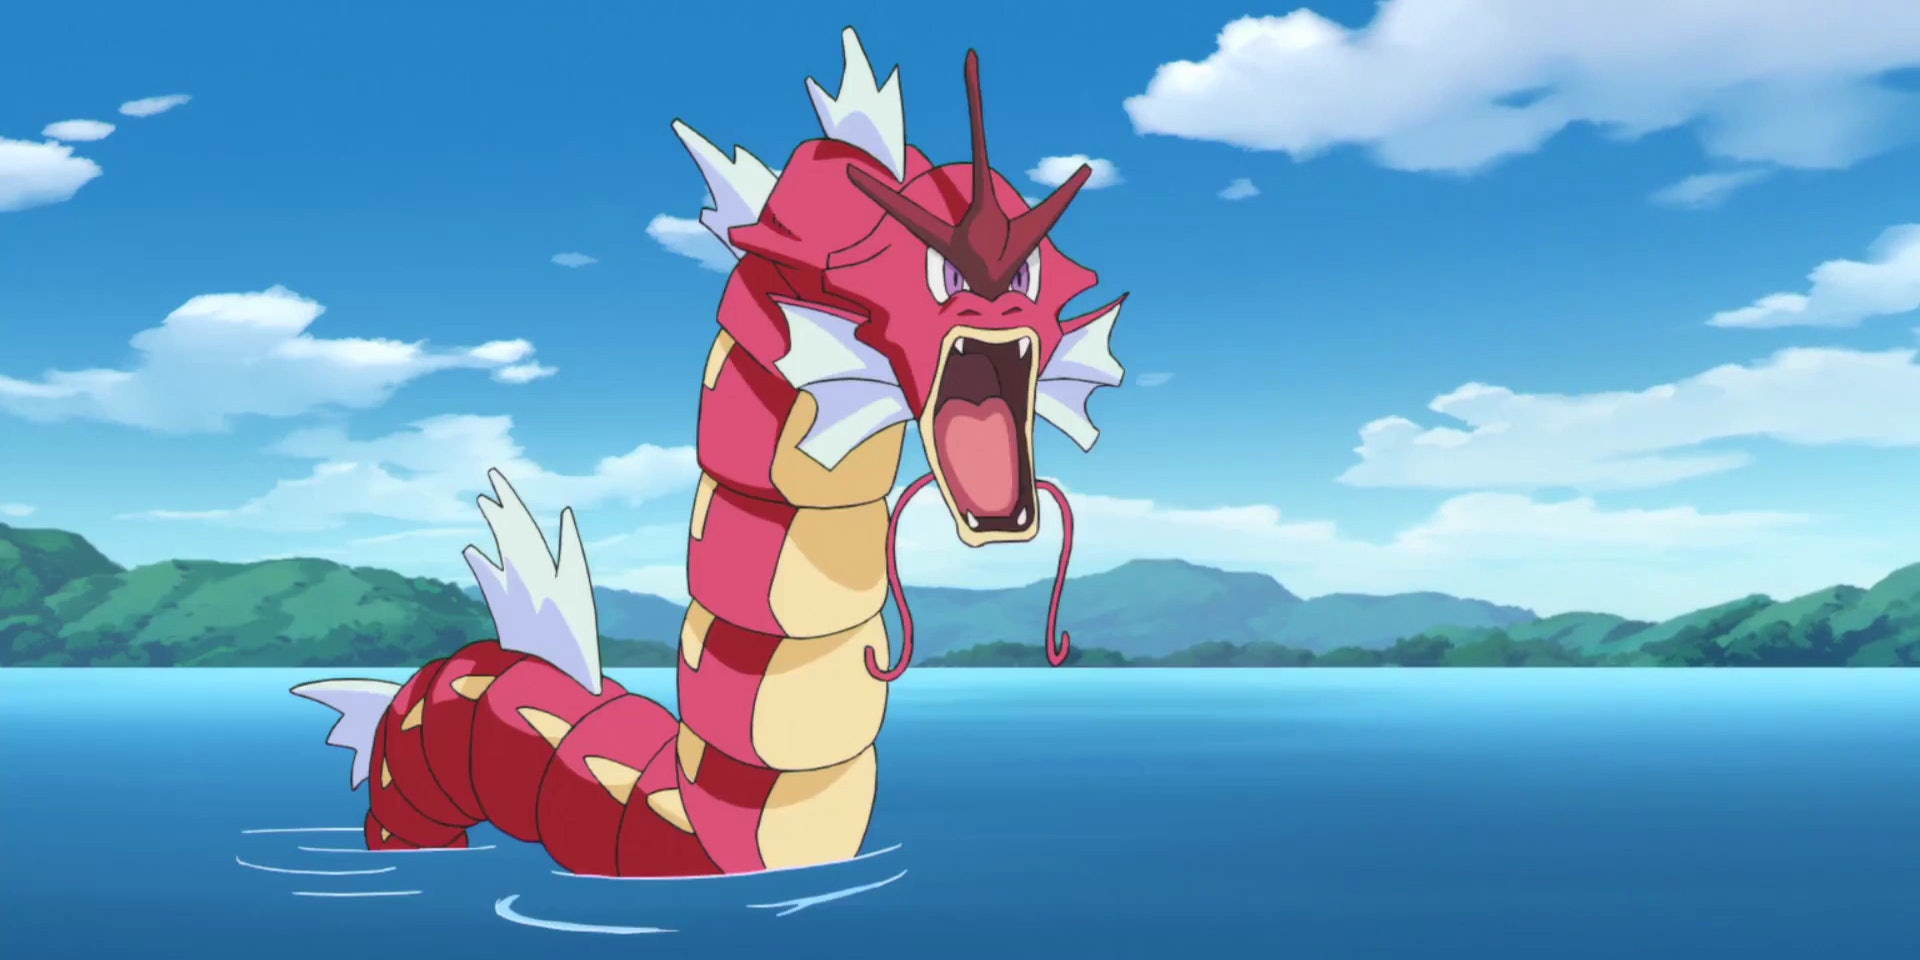 Red Gyarados was one of the first Shiny Pokemon